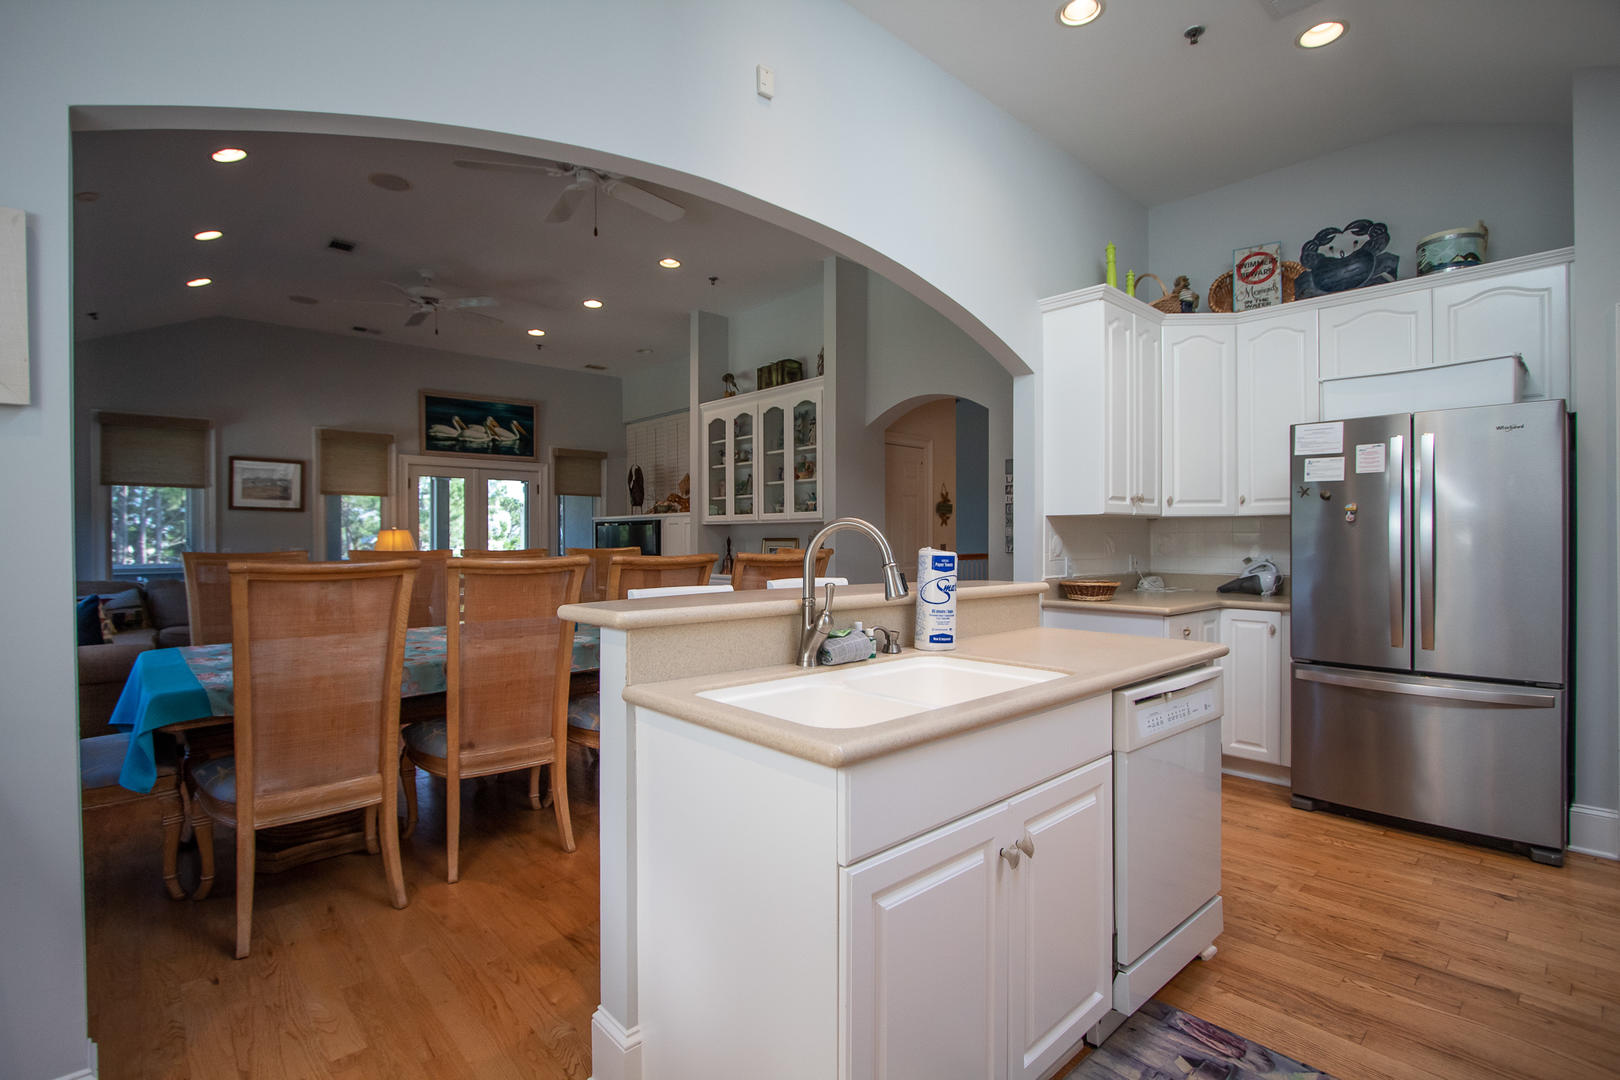 Kitchen, 2nd floor, 2 seats at bar, coffee pot, access to back screened porch